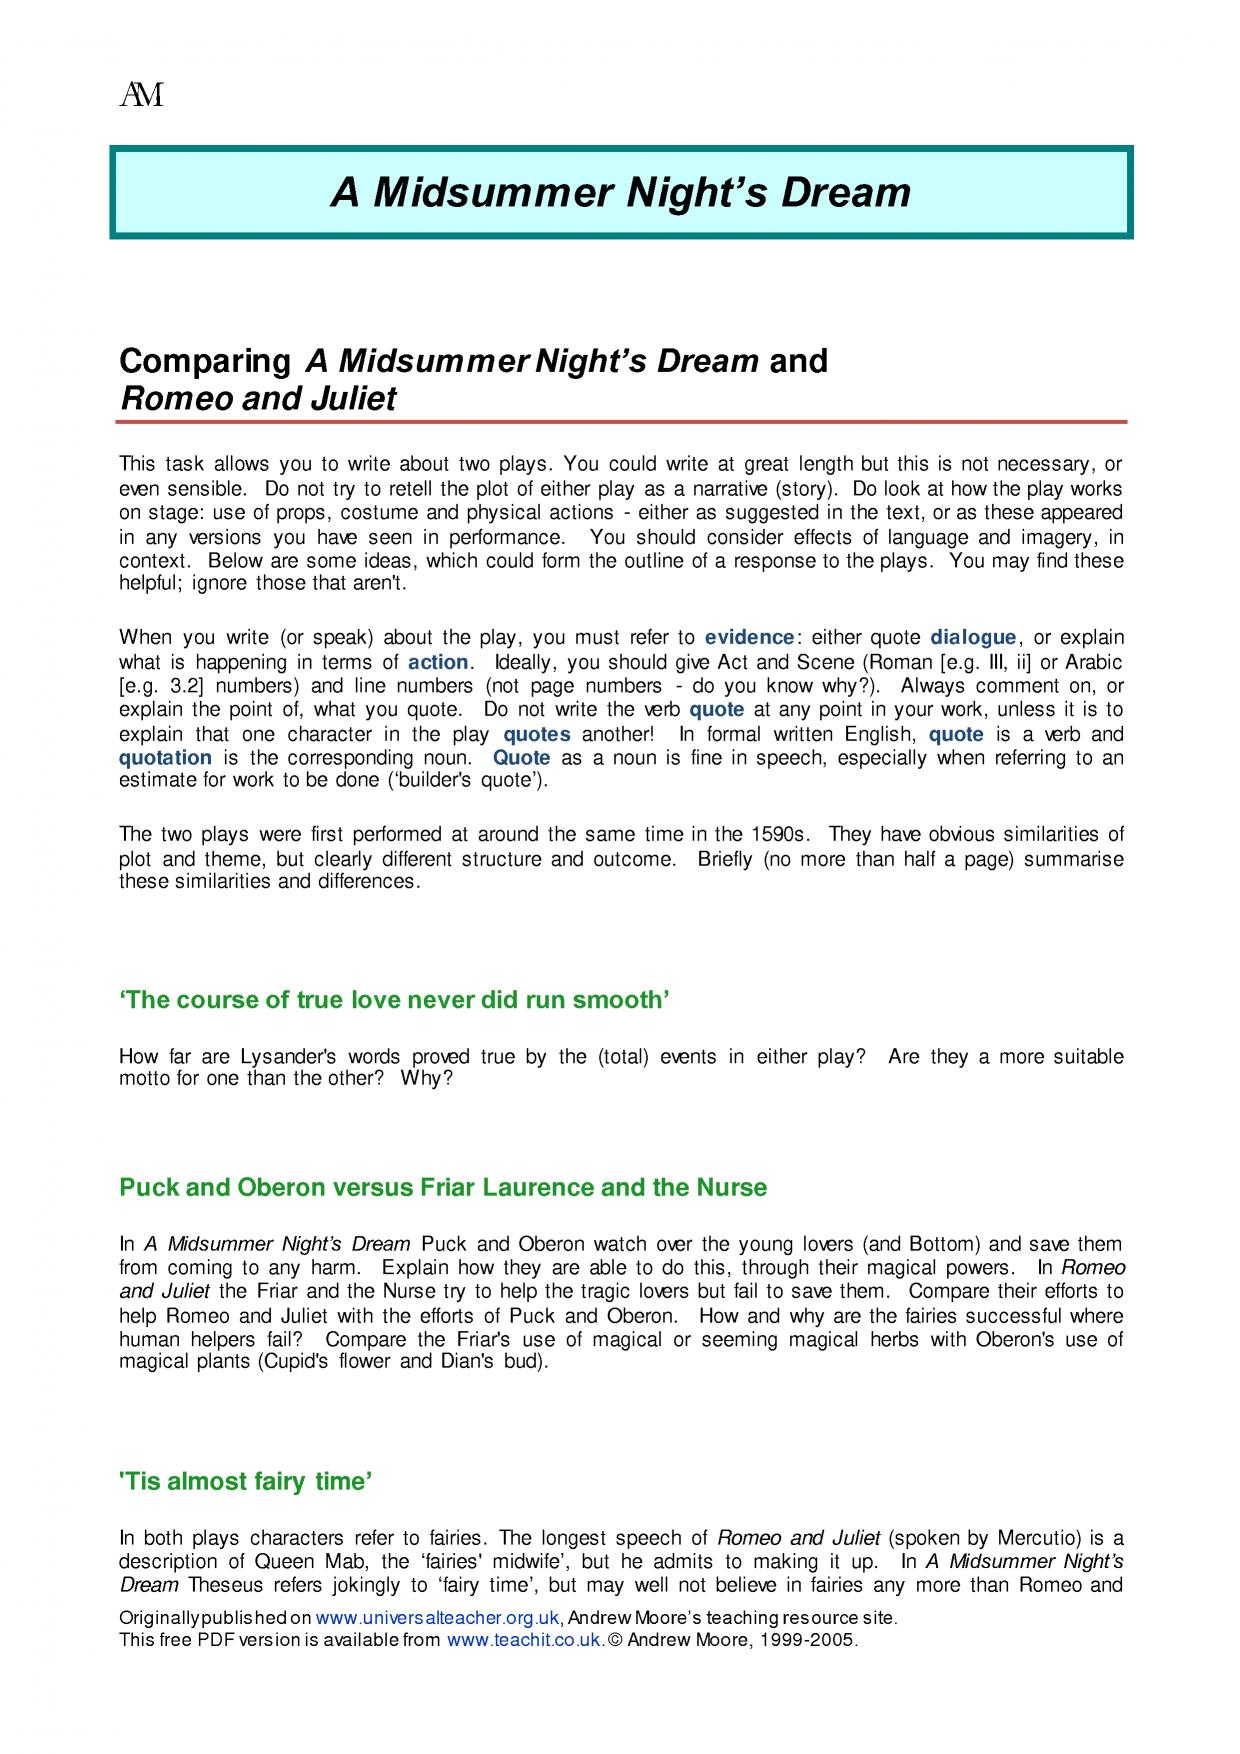 How To Write An Essay Thesis  Persuasive Essay Example High School also How To Make A Thesis Statement For An Essay Romeo And Juliet Film Adaptation Essay Into The Wild Essay Thesis